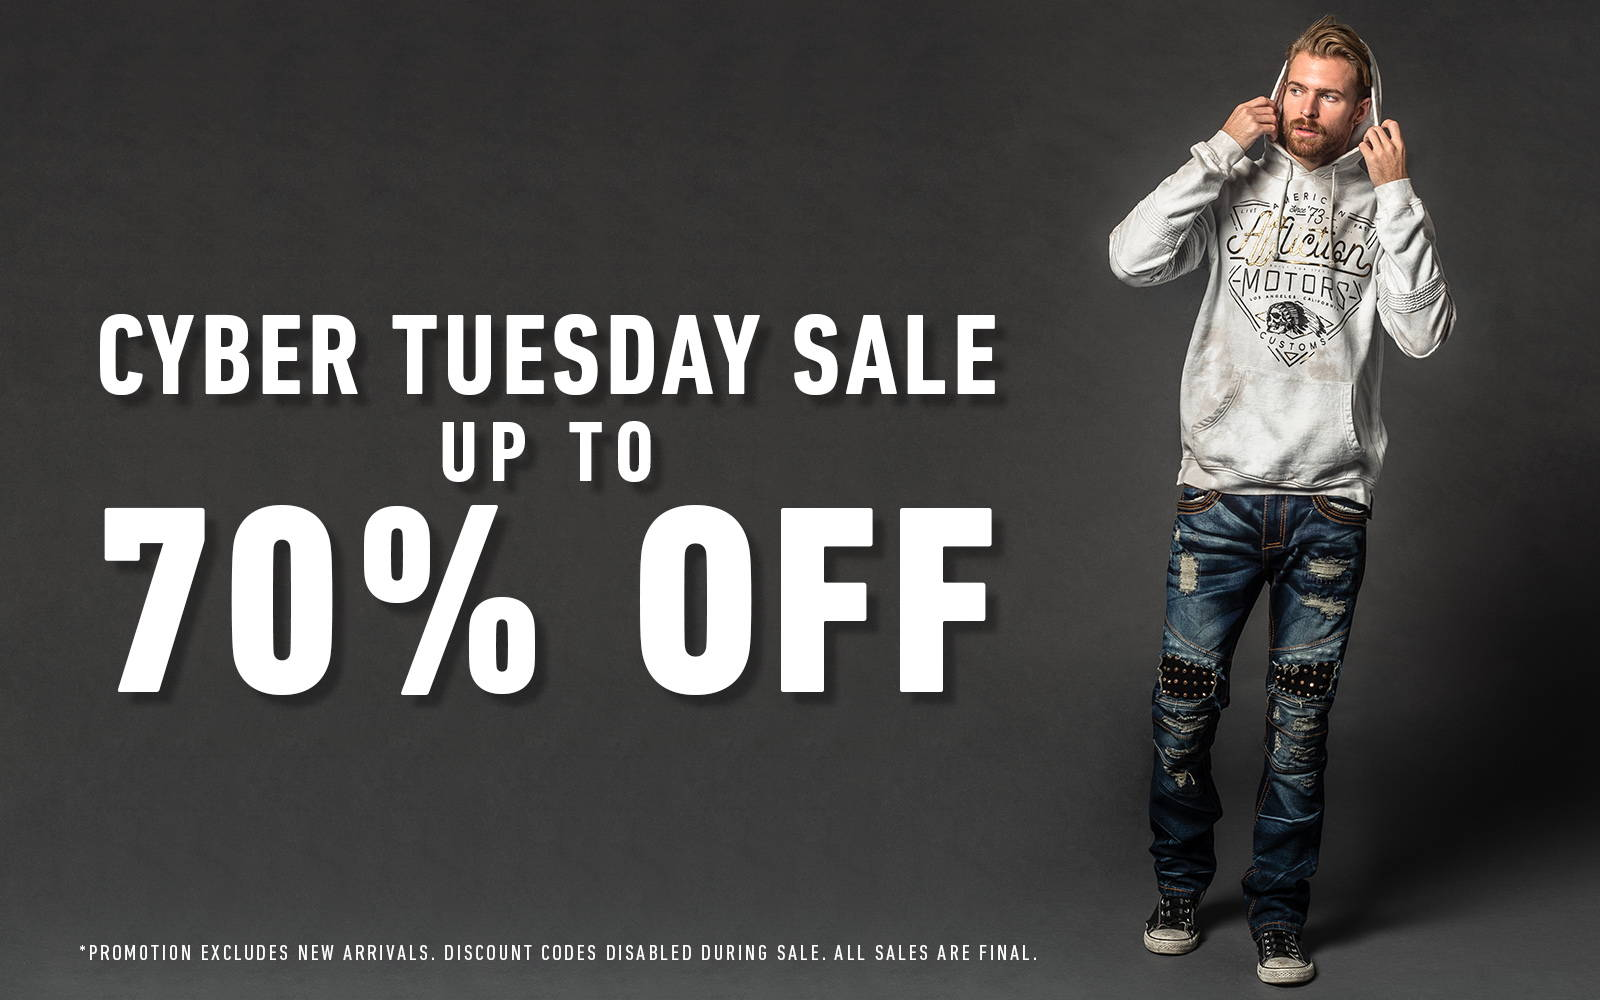 d008bfb38fcb2 Cyber Tuesday Sale - Affliction Clothing